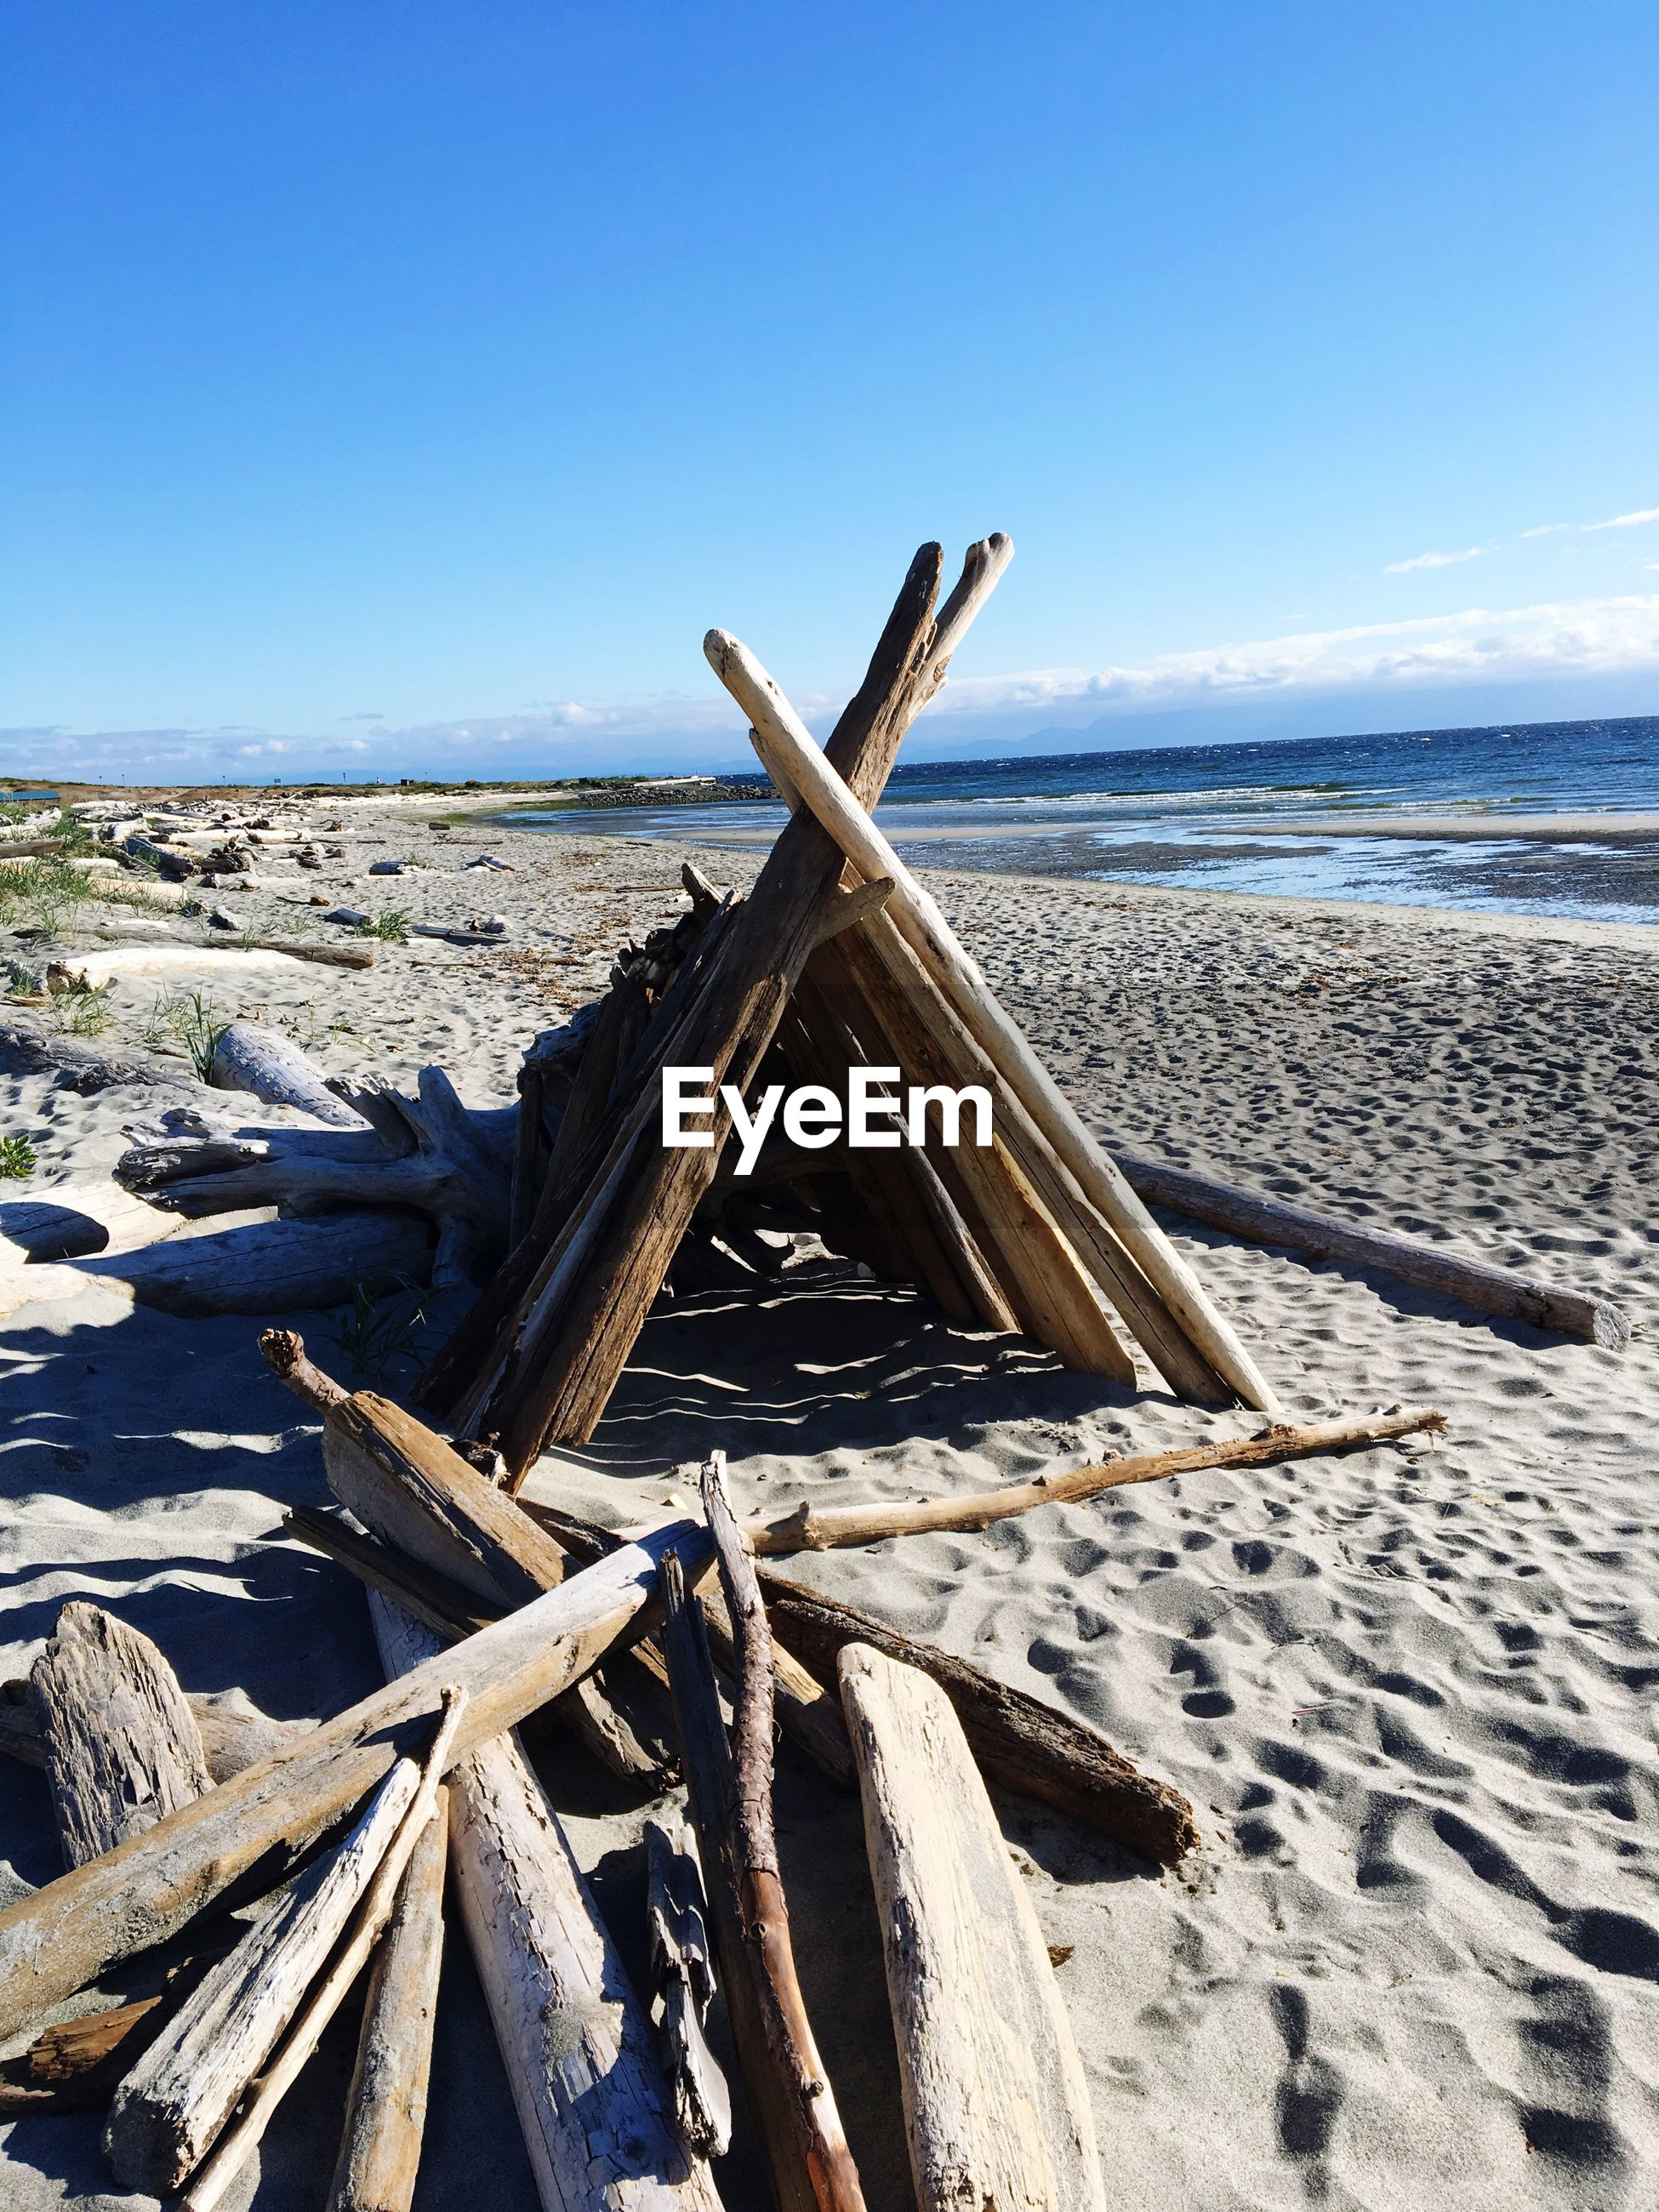 SCENIC VIEW OF DRIFTWOOD ON BEACH